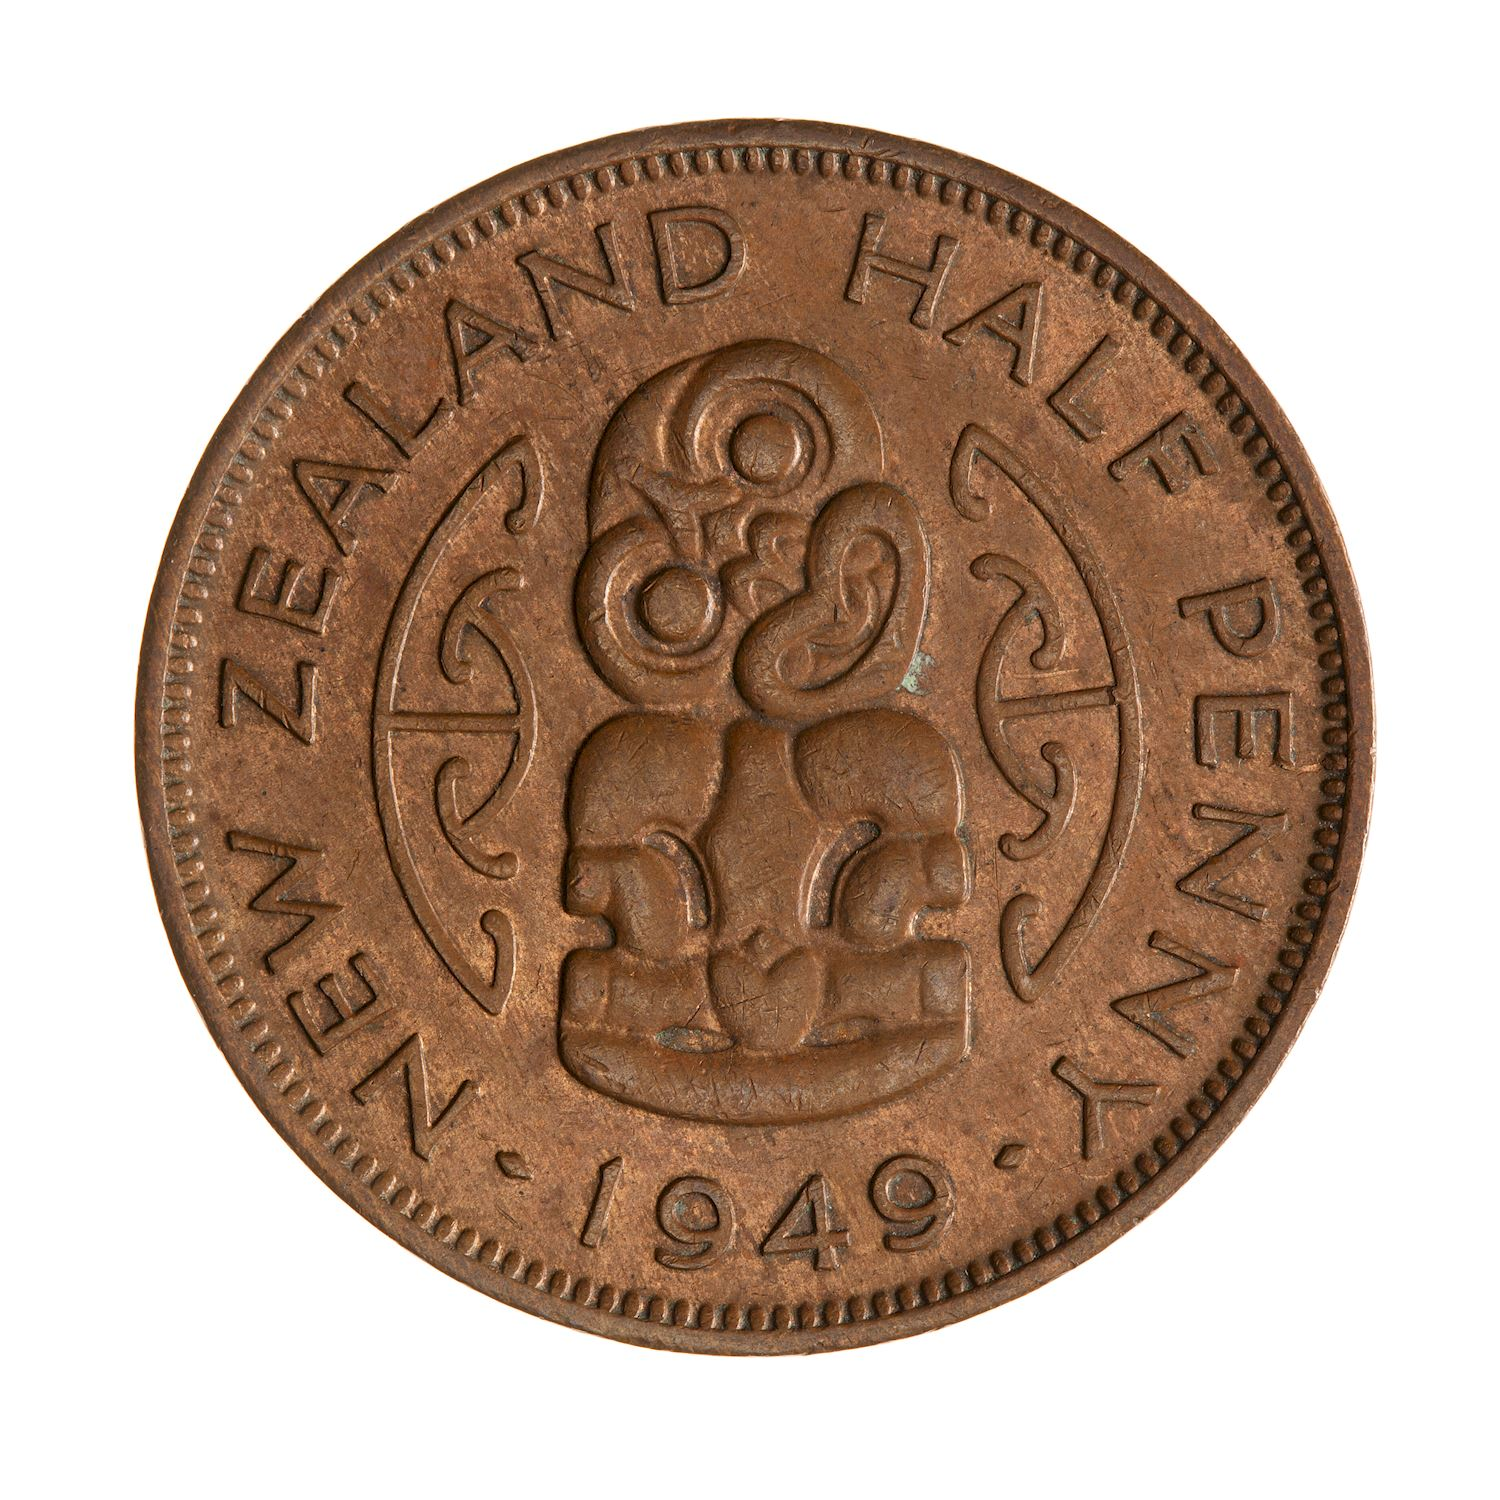 Halfpenny 1949: Photo Coin - 1/2 Penny, New Zealand, 1949